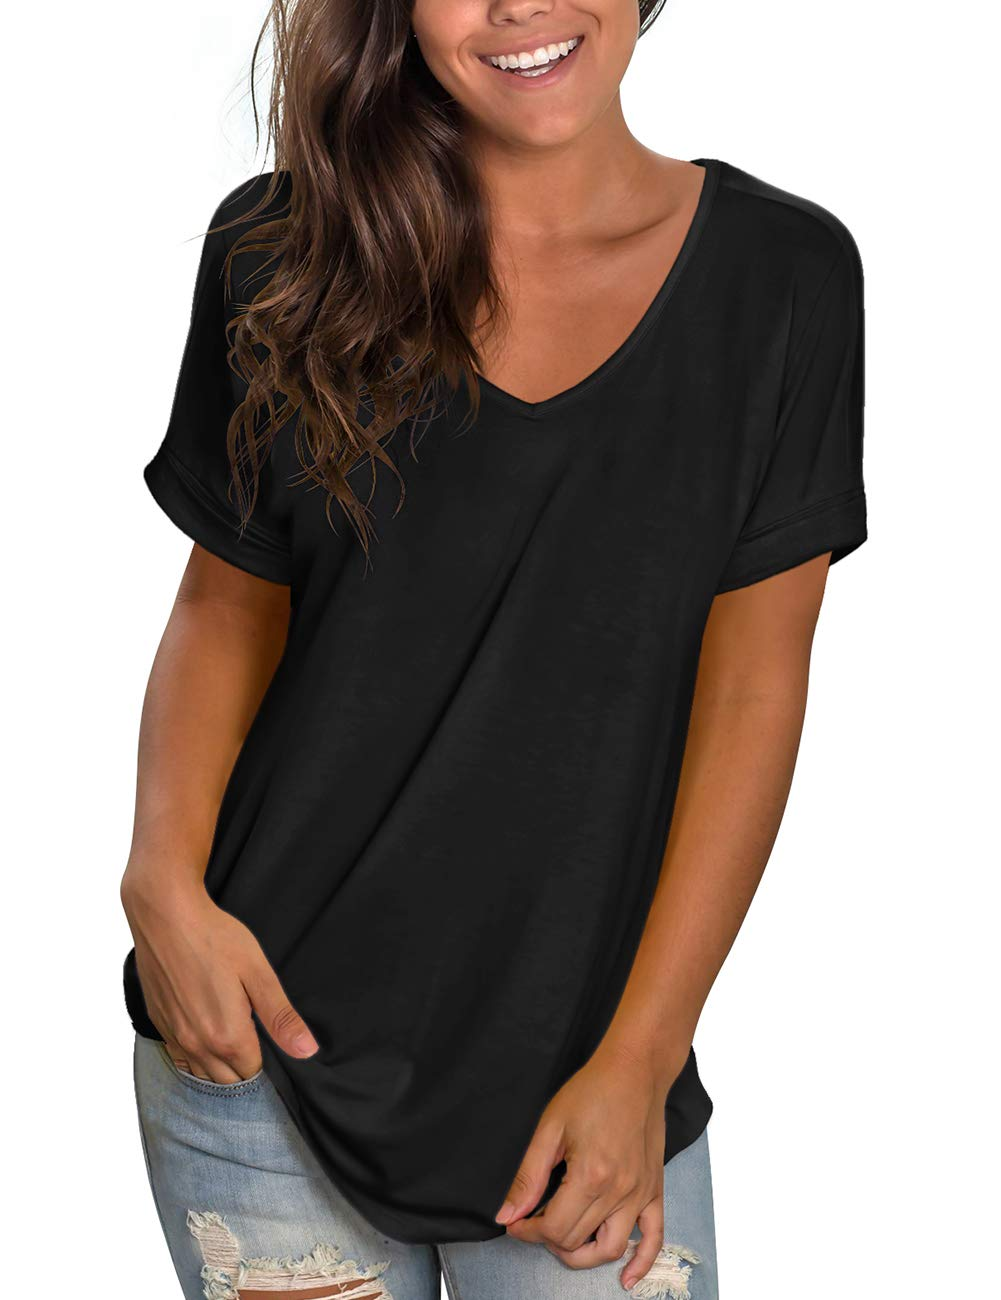 NIASHOT Women's Casual Short Sleeve Solid Criss Cross Front V-Neck T-Shirt Tops